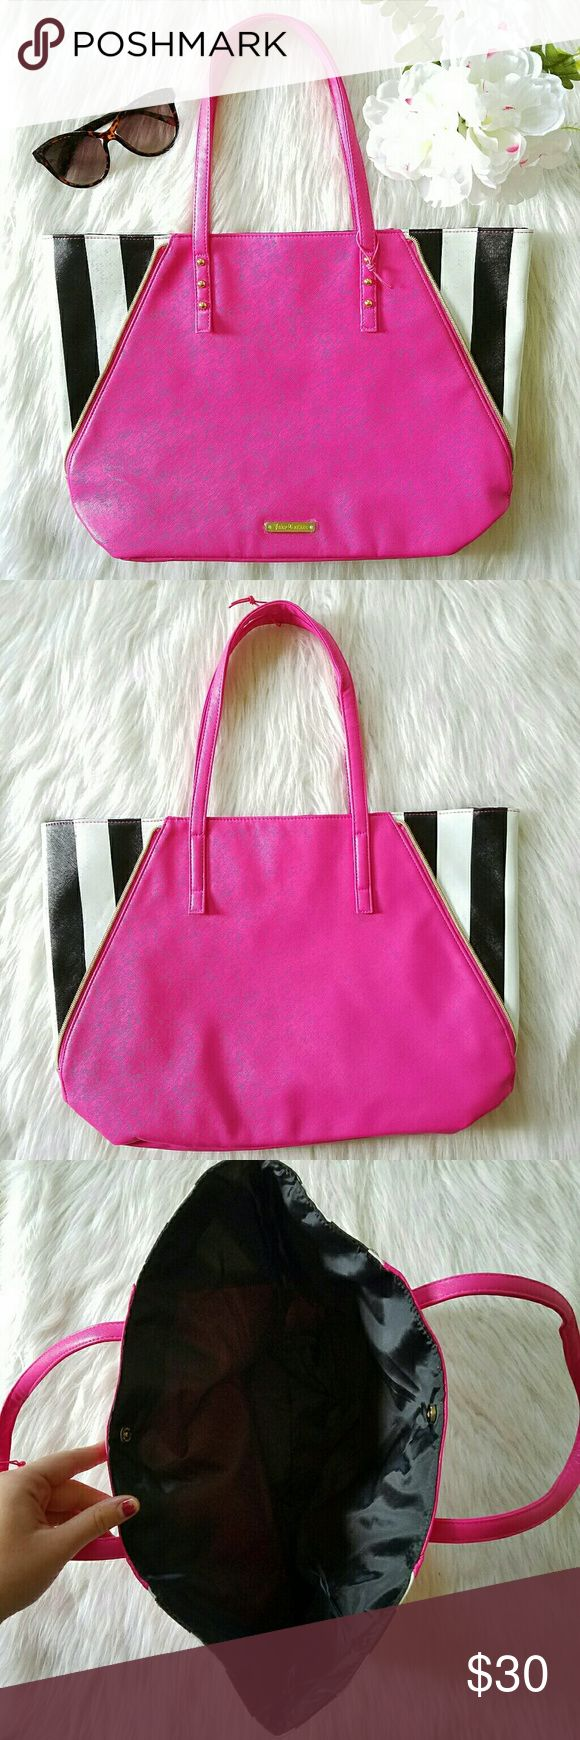 """Juicy Couture Pink Striped Tote Bag Juicy Couture brand. XL Tote / Shoulder Bag  18"""" W x 12.5"""" H x 3"""" D Perfect for the gym or the beach! Hot pink body with black and white stripes on each side. Accented with gold tone zipper trim.  Black satin interior lining. Top magnetic closure. Brand new! Never used! The tags were pulled off by accident. The protective film covering is still attached to the logo plate on the front. Juicy Couture Bags Totes"""